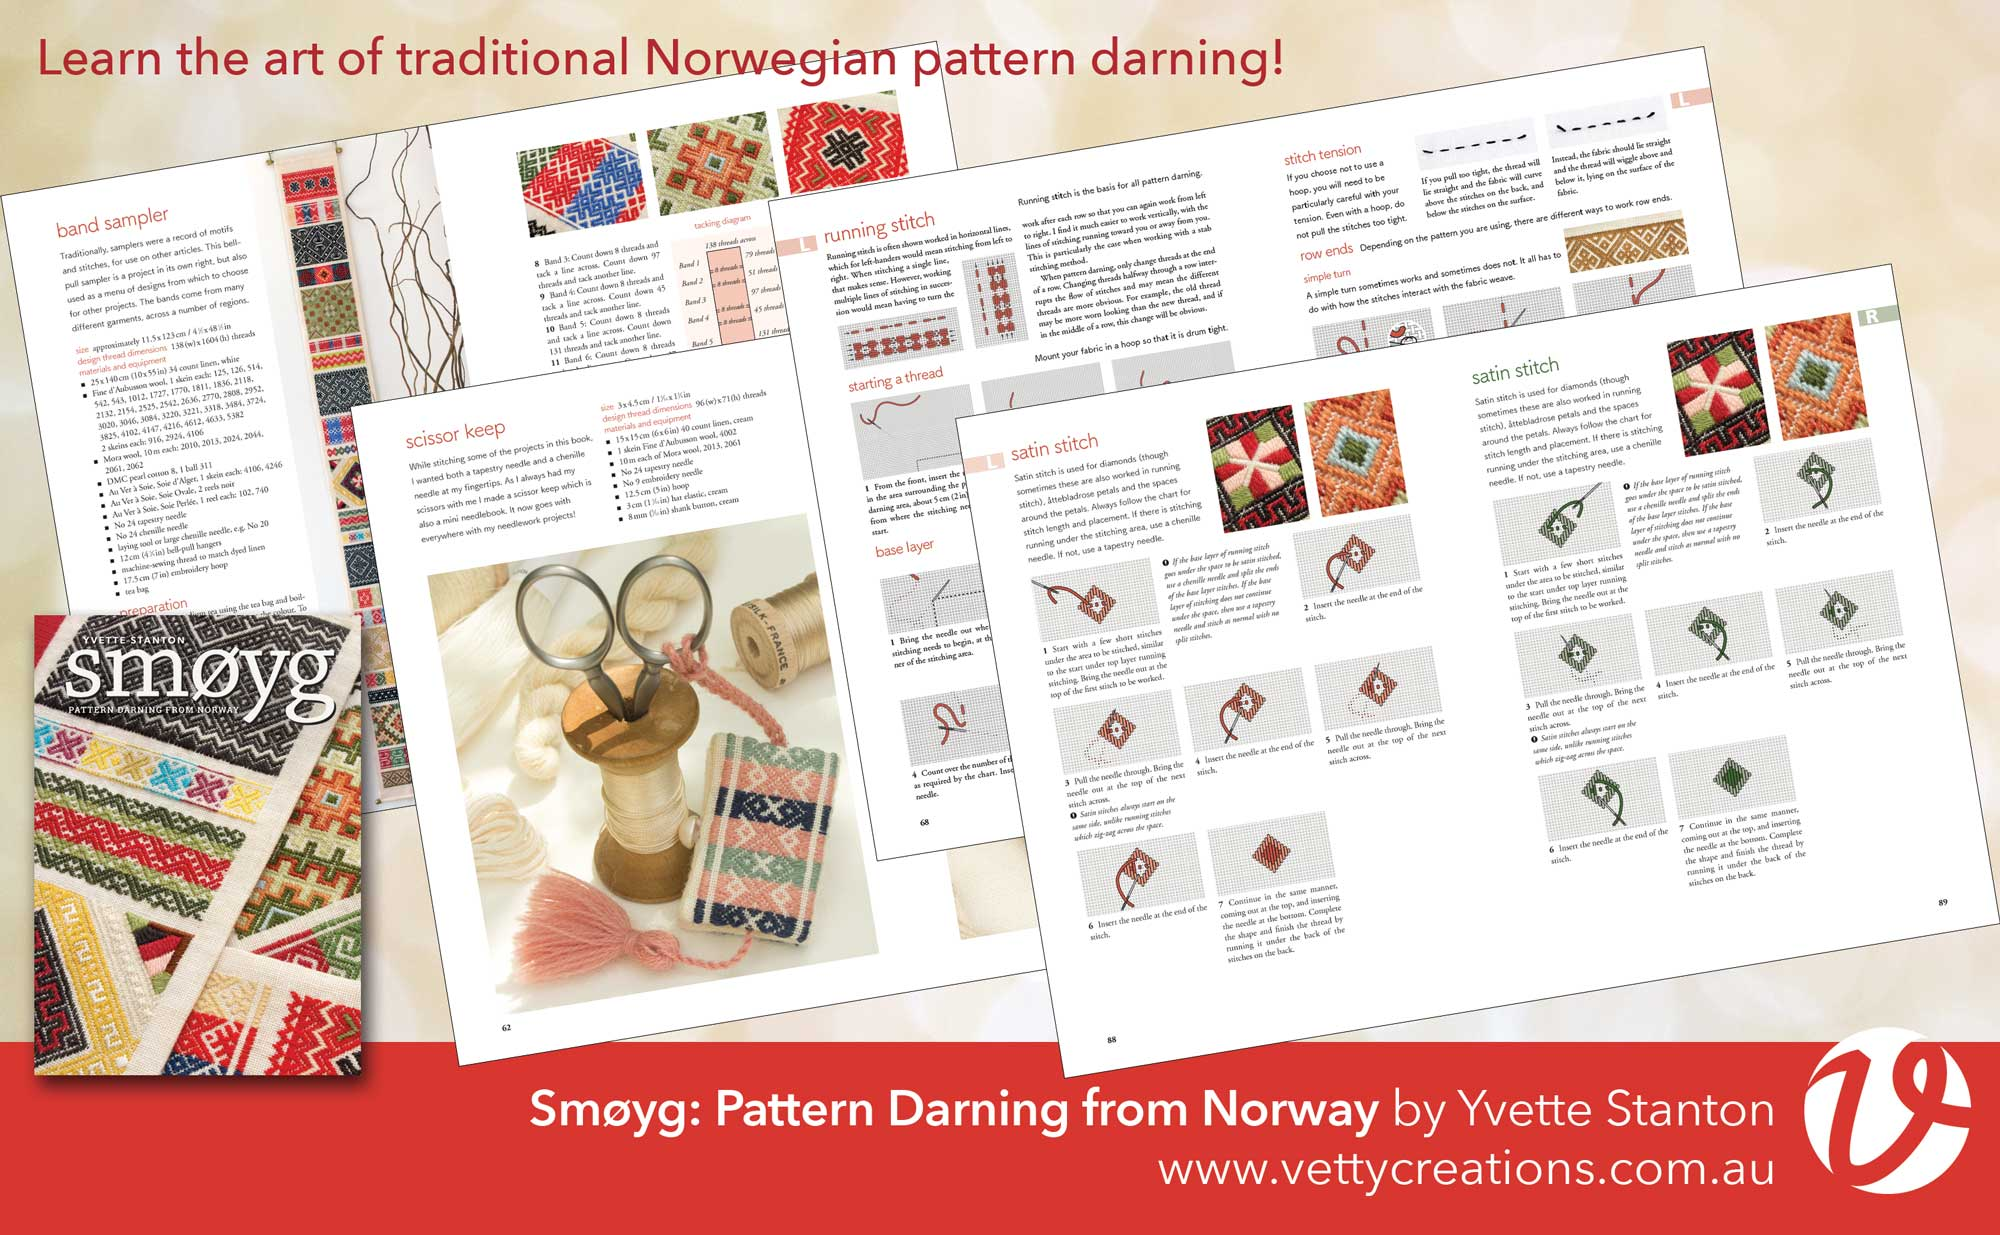 Smoyg Pattern Darning from Norway